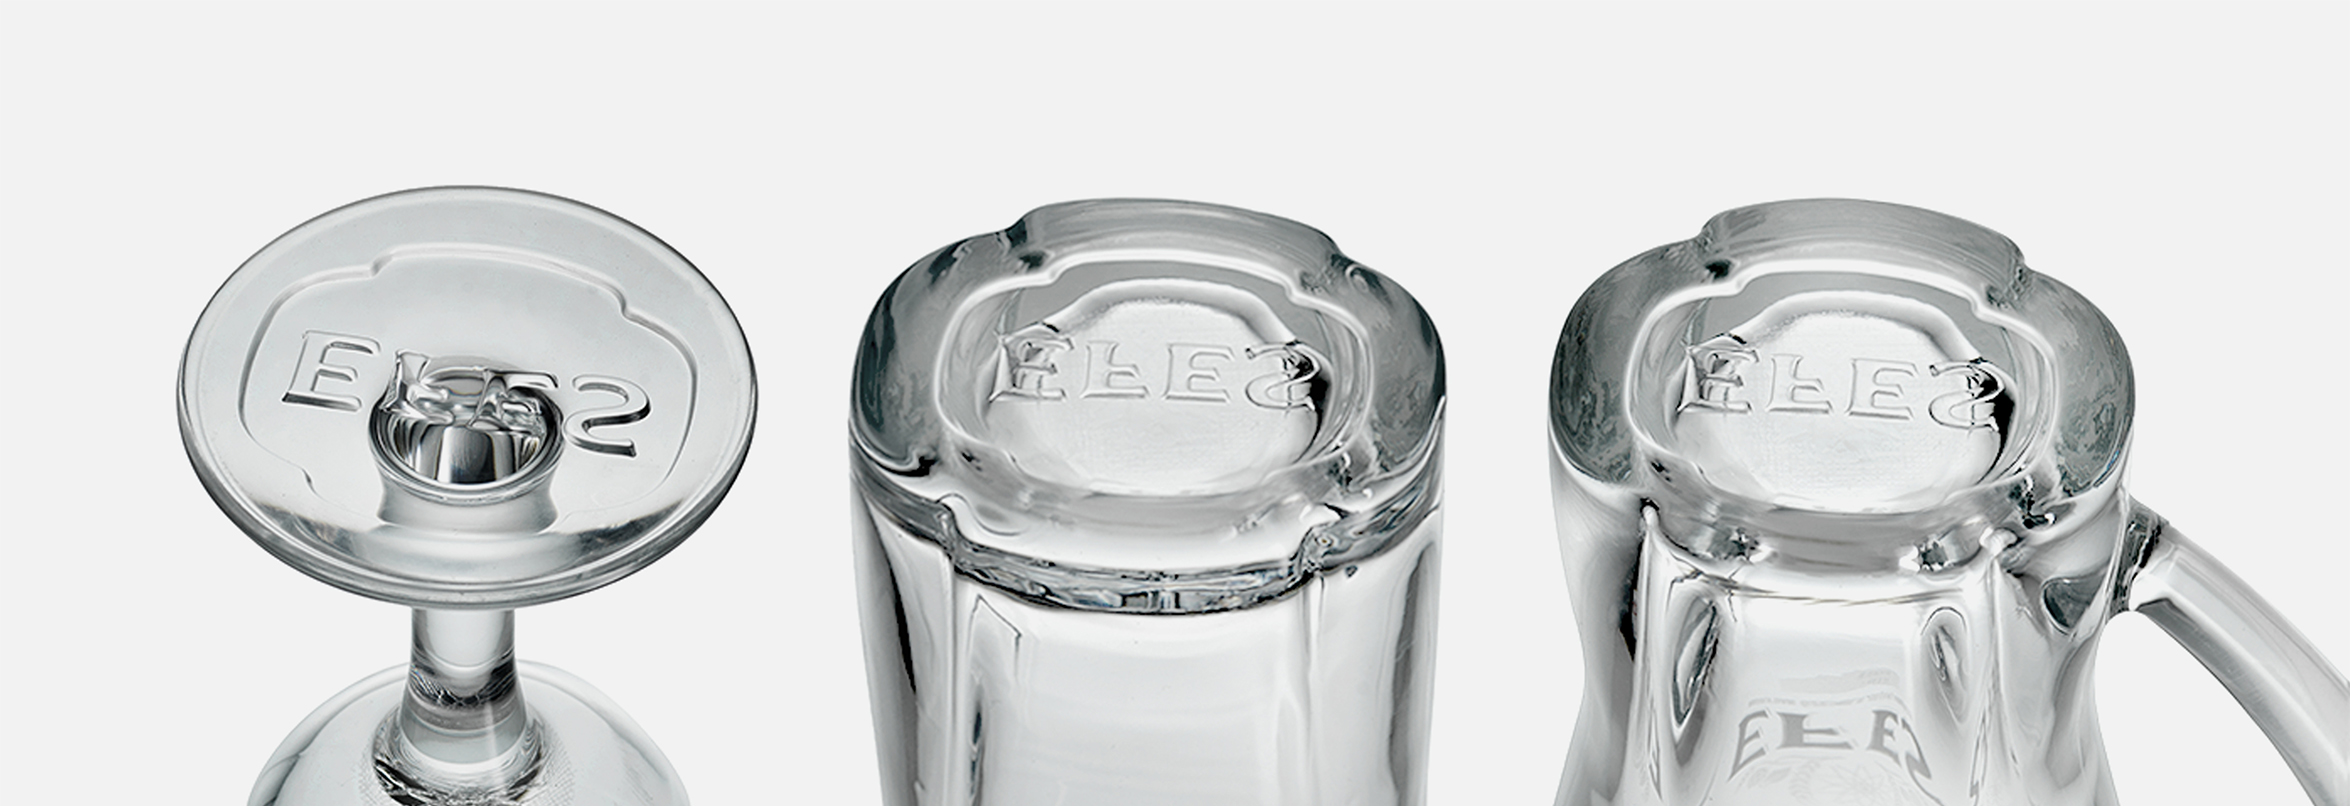 Efes Glassware Worthy of Being Toasted - World Brand Design